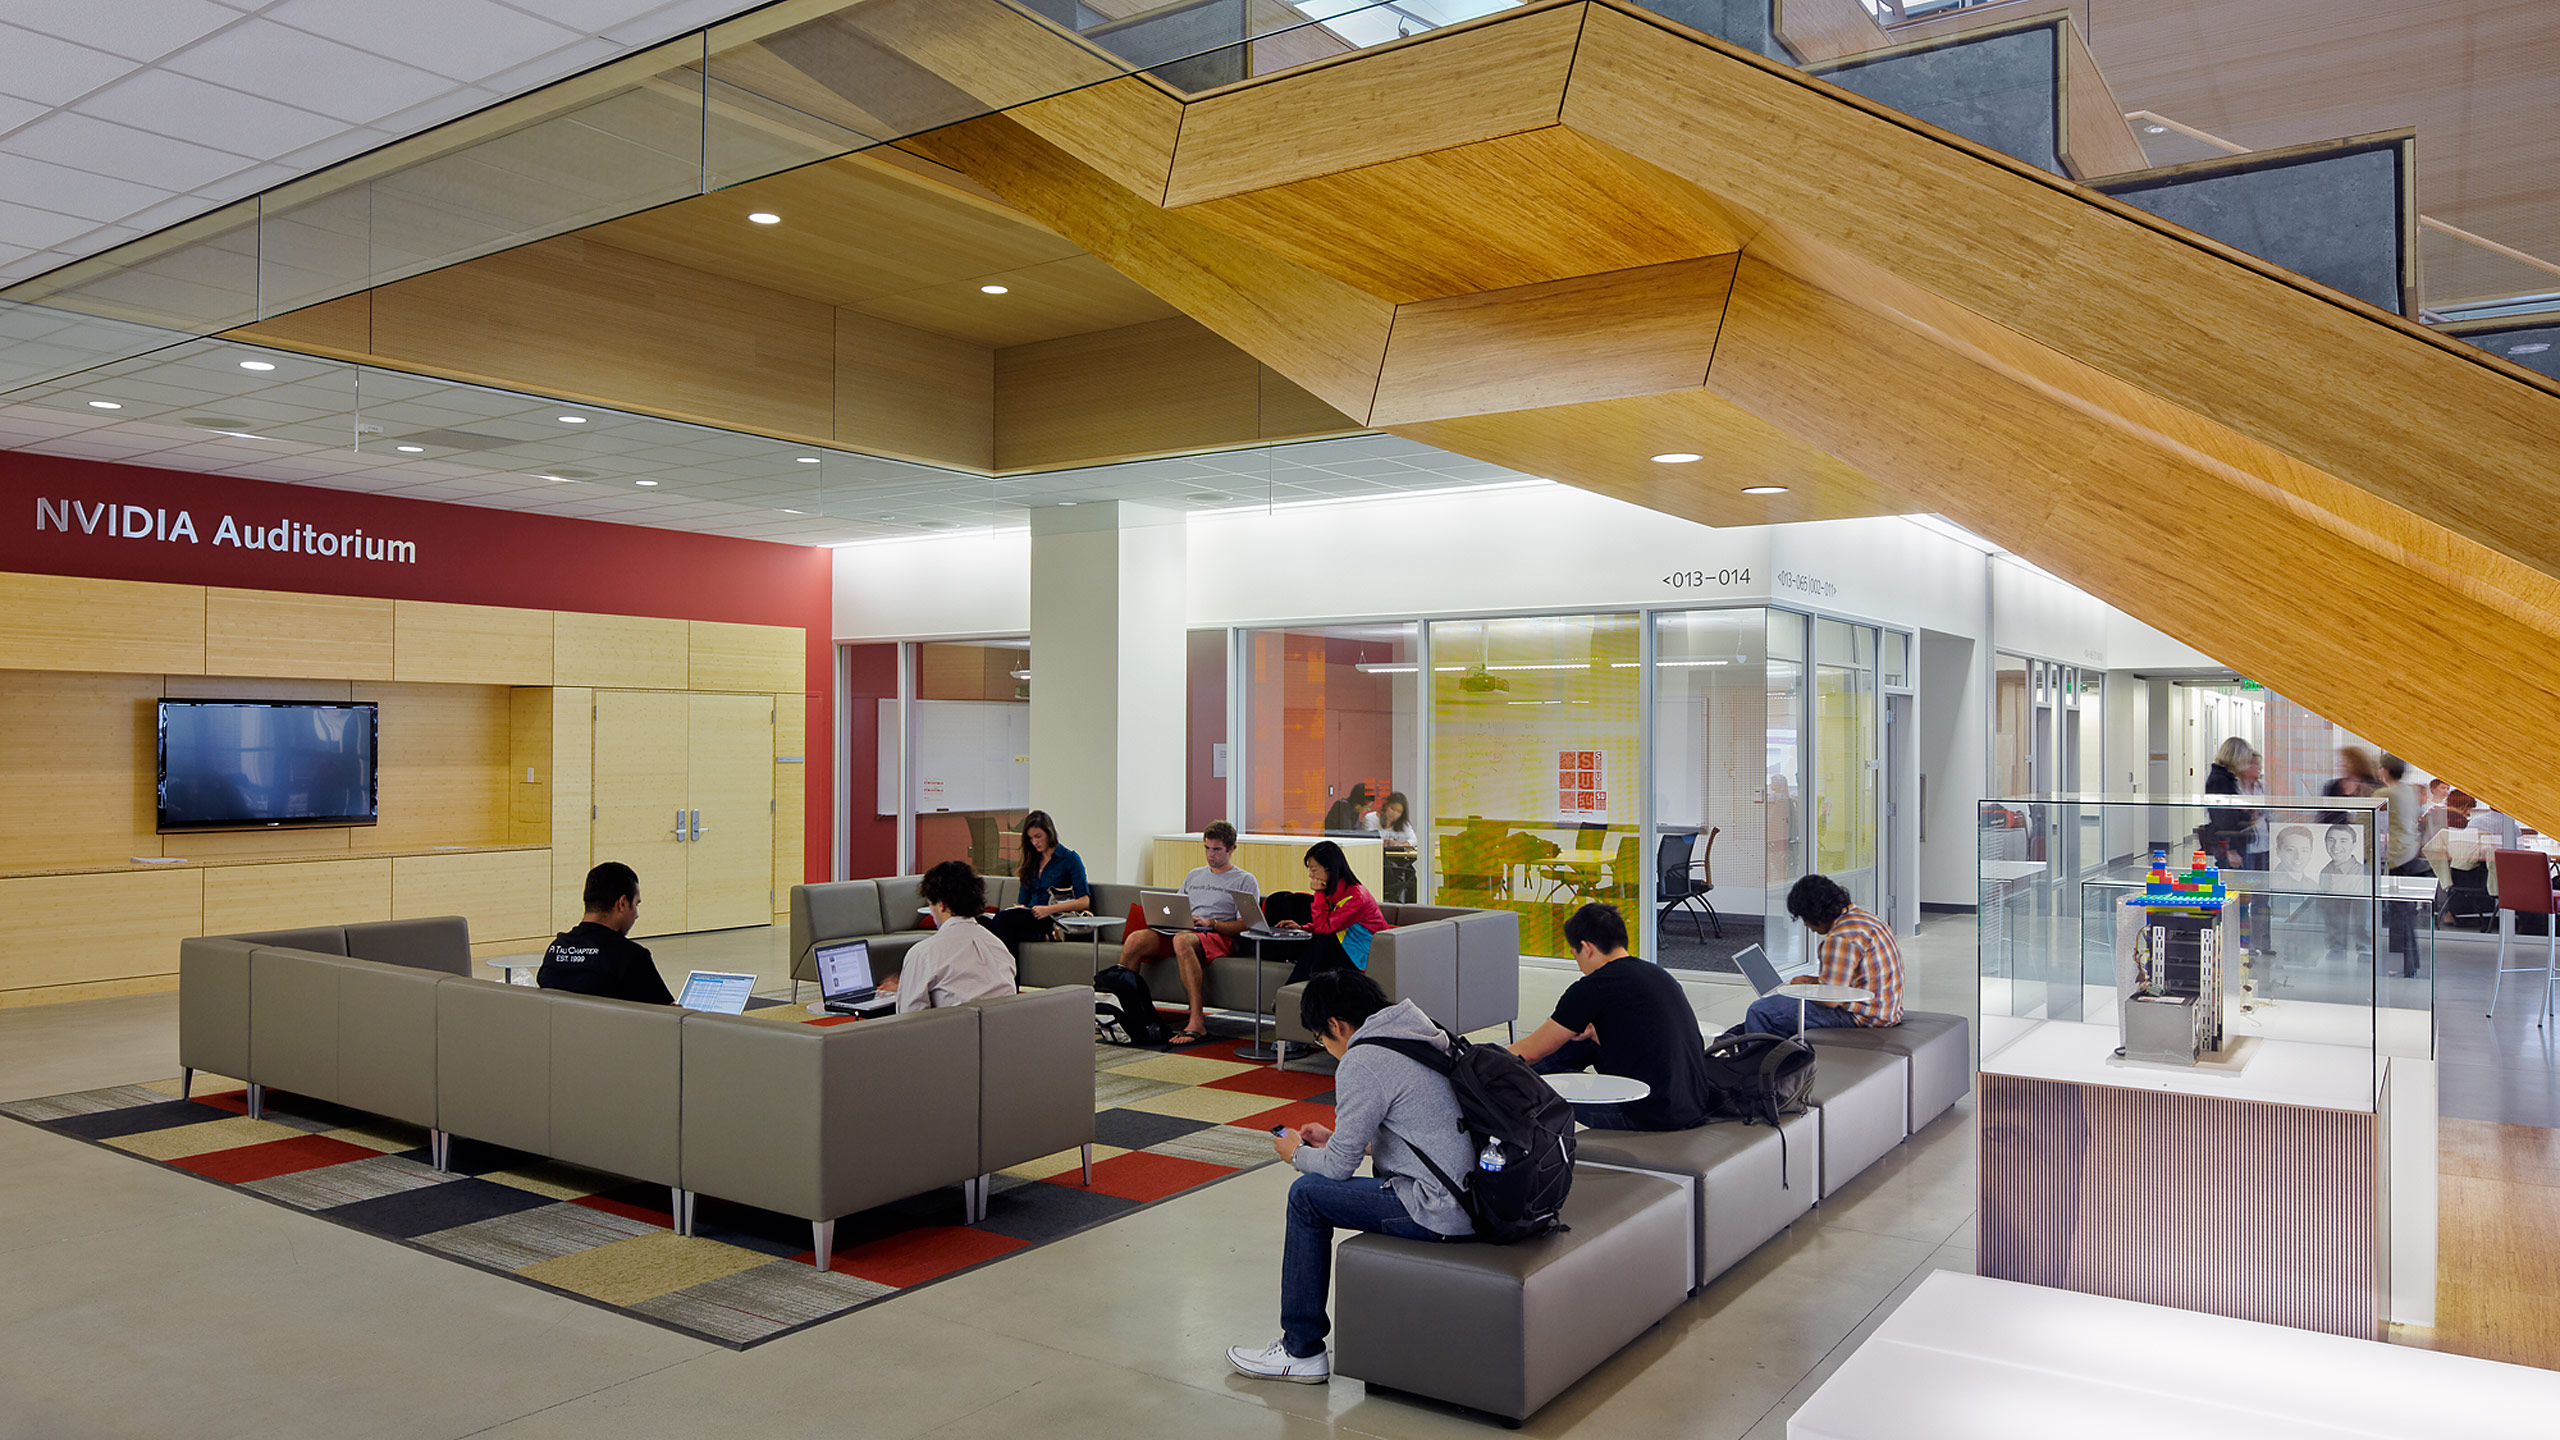 Jen-Hsun Huang Engineering Center – Stanford University image 7